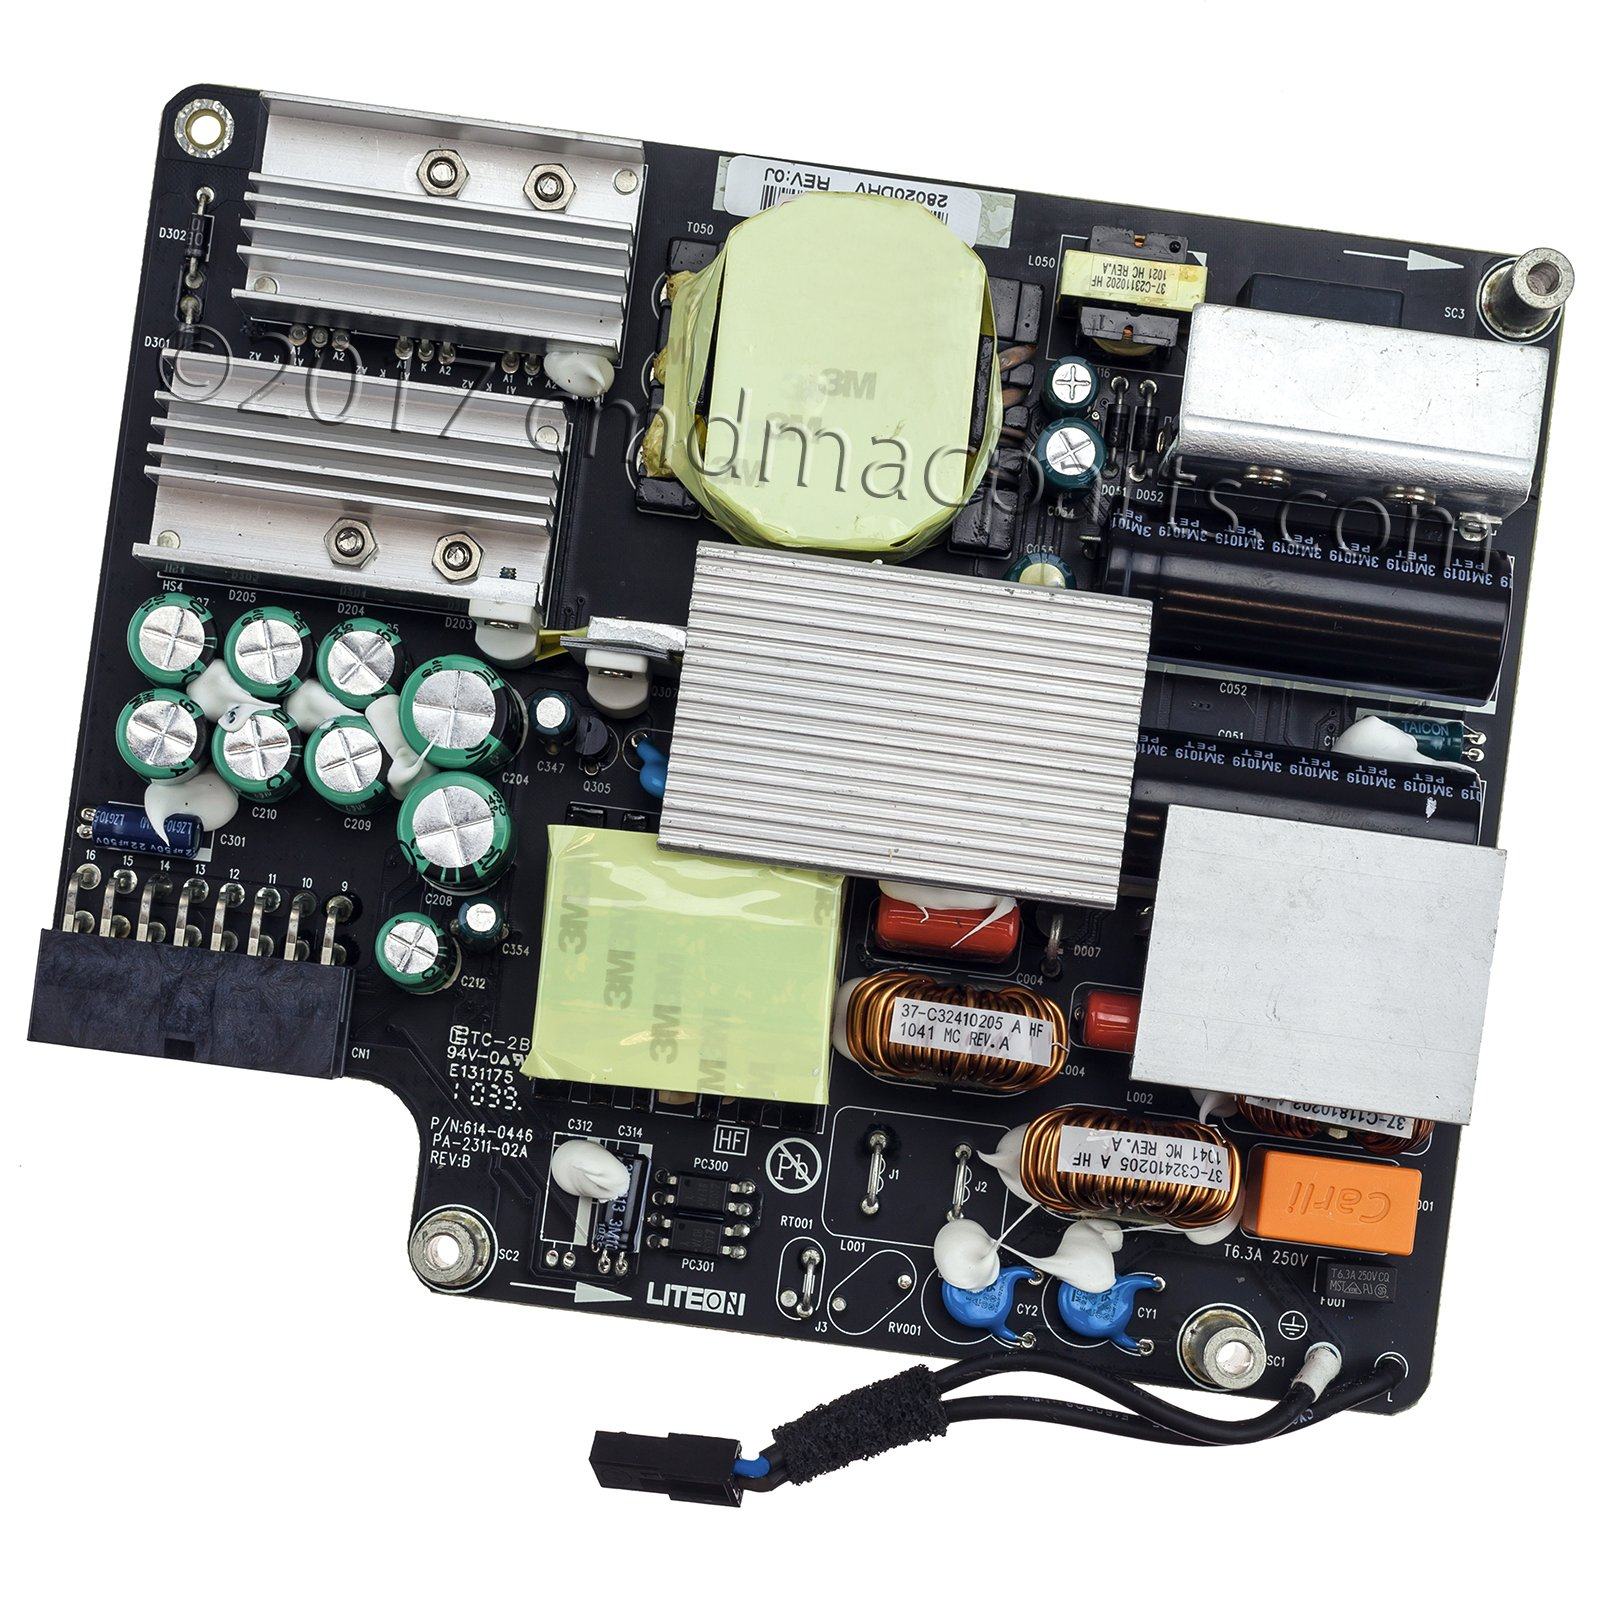 Odyson - Power Supply (310W) Replacement for iMac 27'' A1312 (Late 2009-Mid 2011) by Odyson